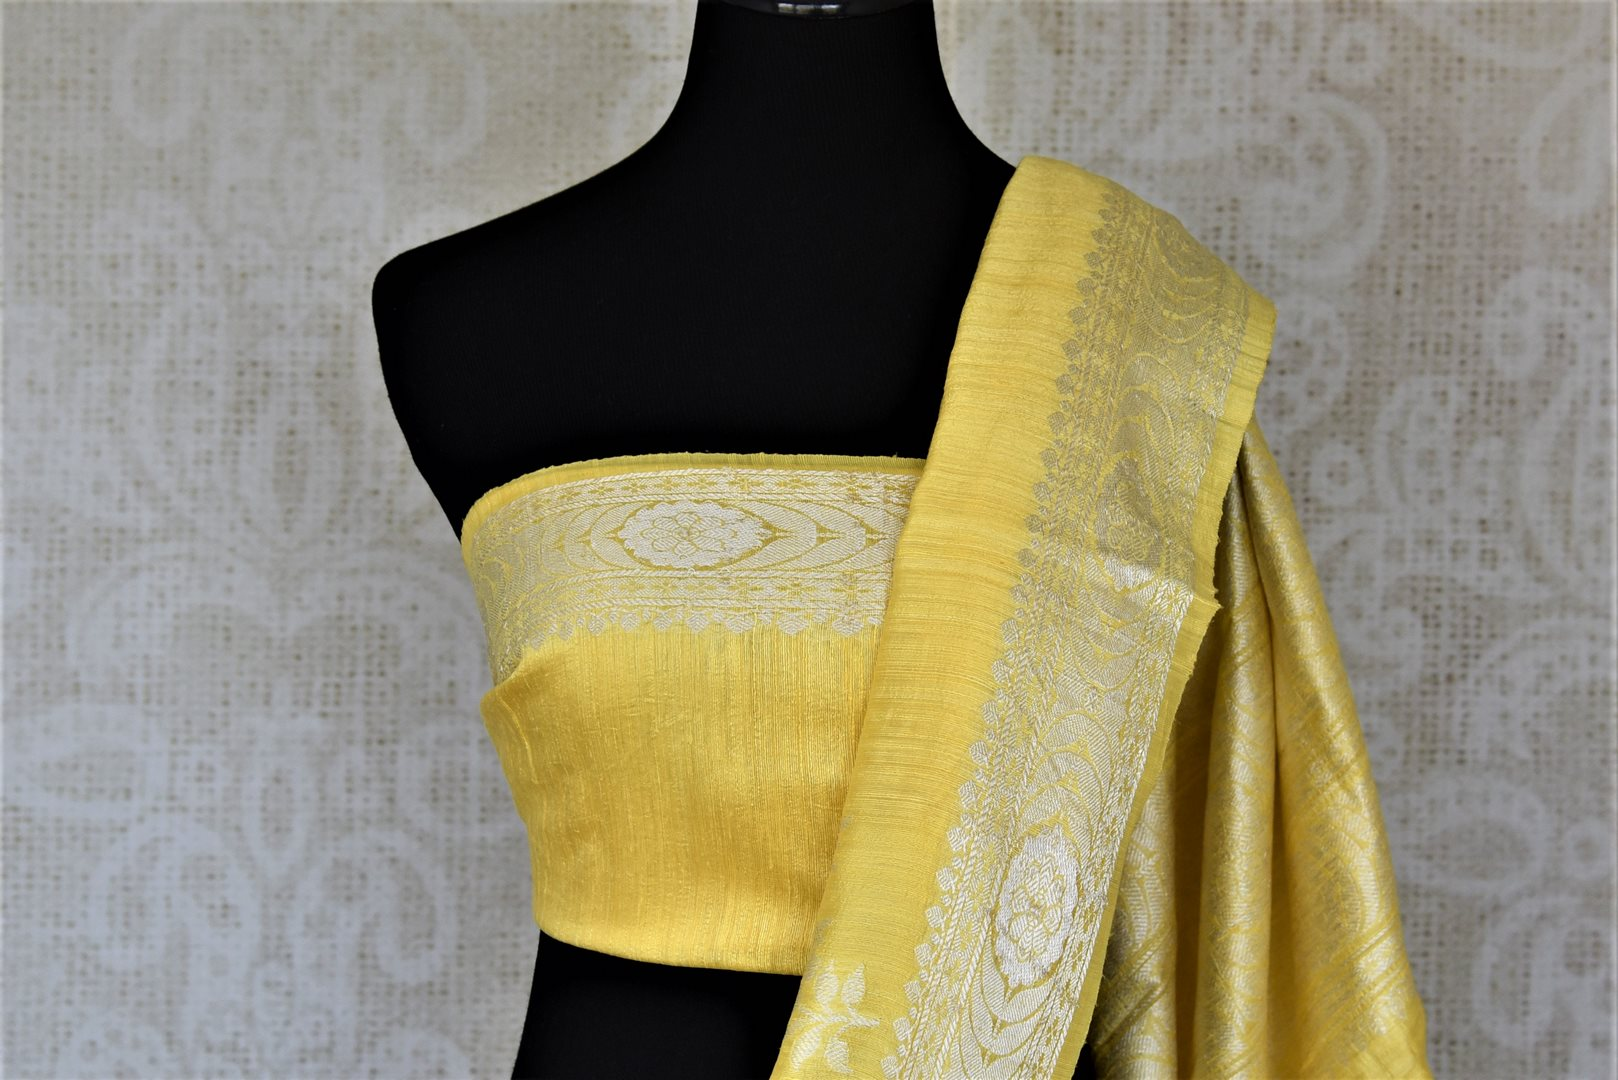 Buy beautiful lemon yellow tussar Benarasi sari online in USA with silver zari border. For Indian women in USA, Pure Elegance Indian fashion store brings an exquisite collection Banarasi sarees, Banarasi silk saris, tussar sarees,  work sarees, pure silk sarees all under one roof. Shop online now.-blouse pallu